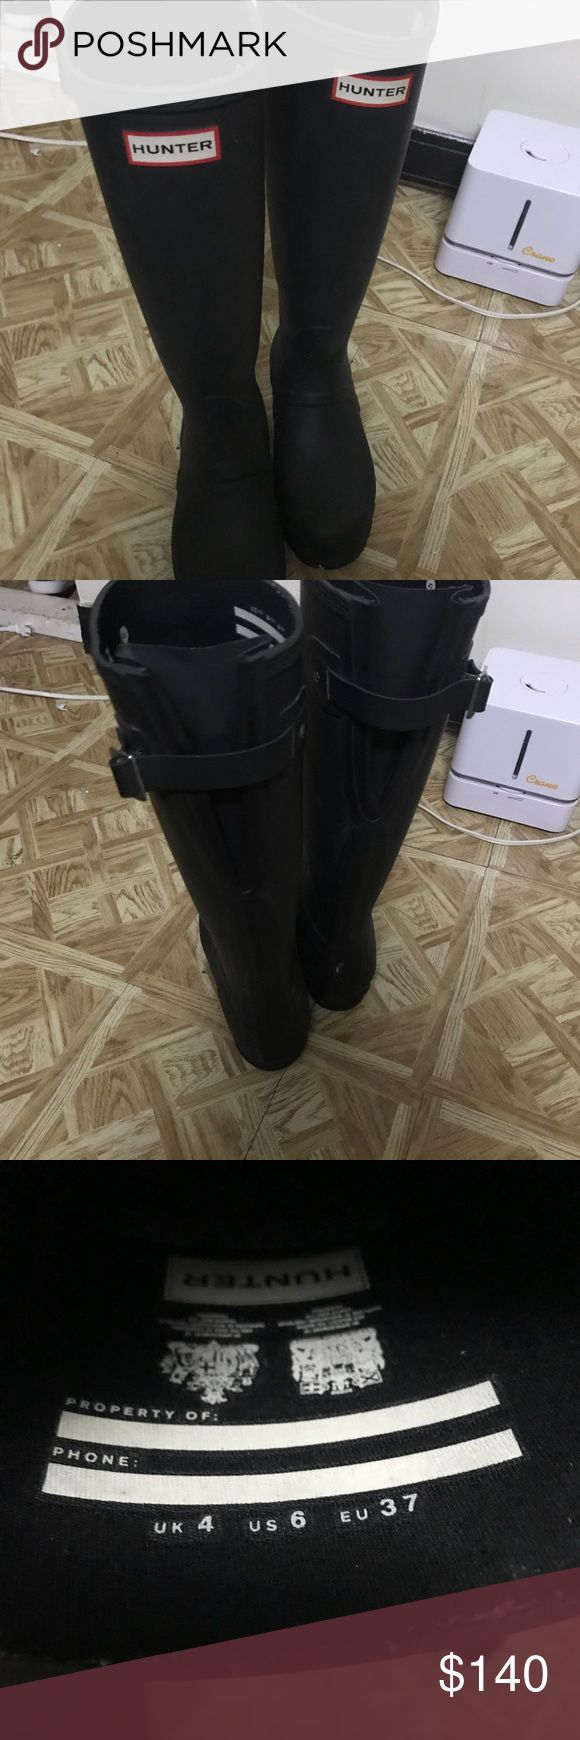 Hunter adjustable wide calf rain boots Only worn a few times! Great for rain and snow with thick socks. Color is matte black Hunter Boots Shoes Winter & Rain Boots